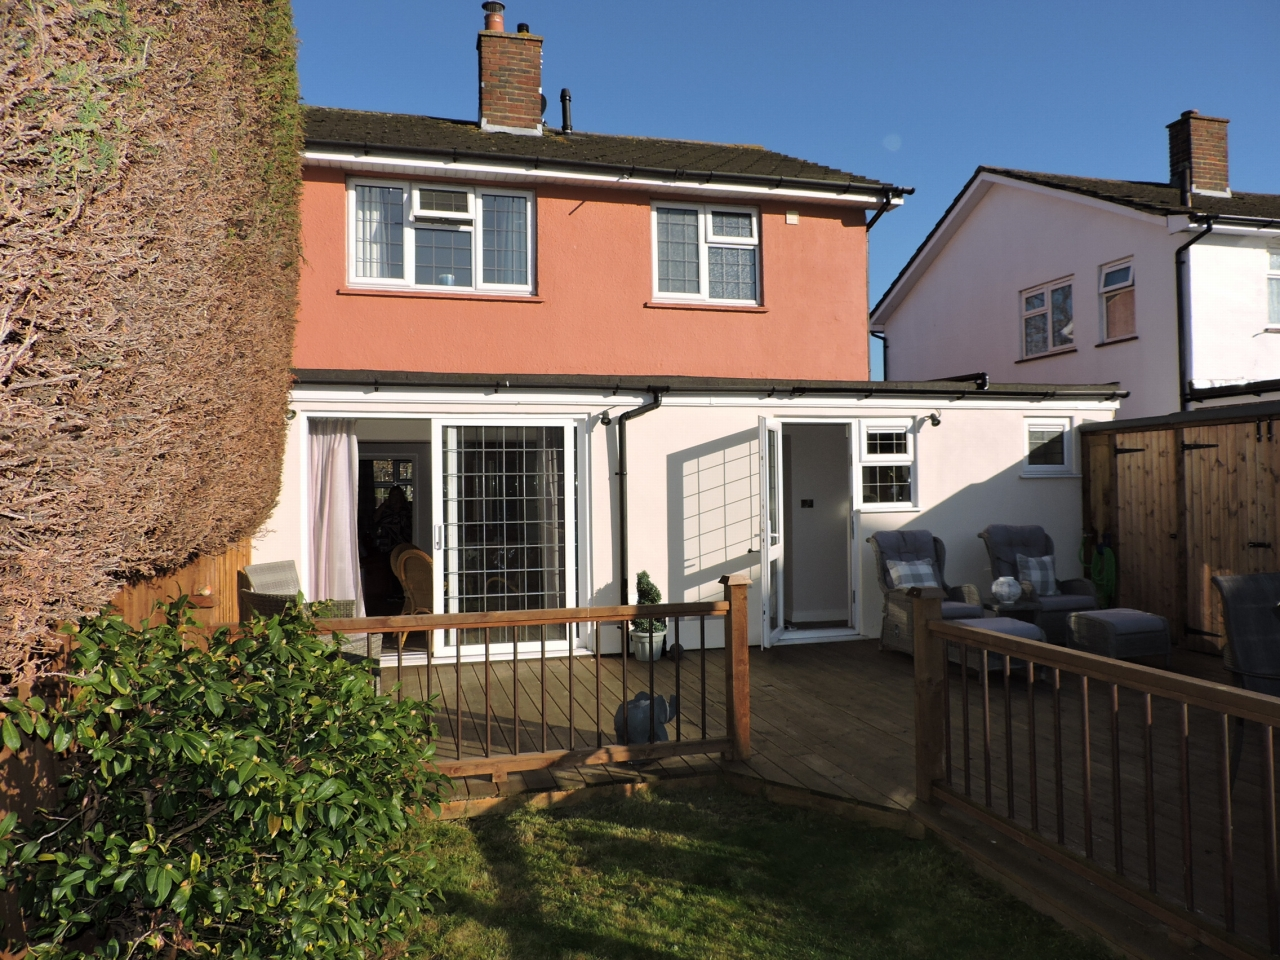 4 bedroom semi-detached house For Sale in Epsom - Photograph 17